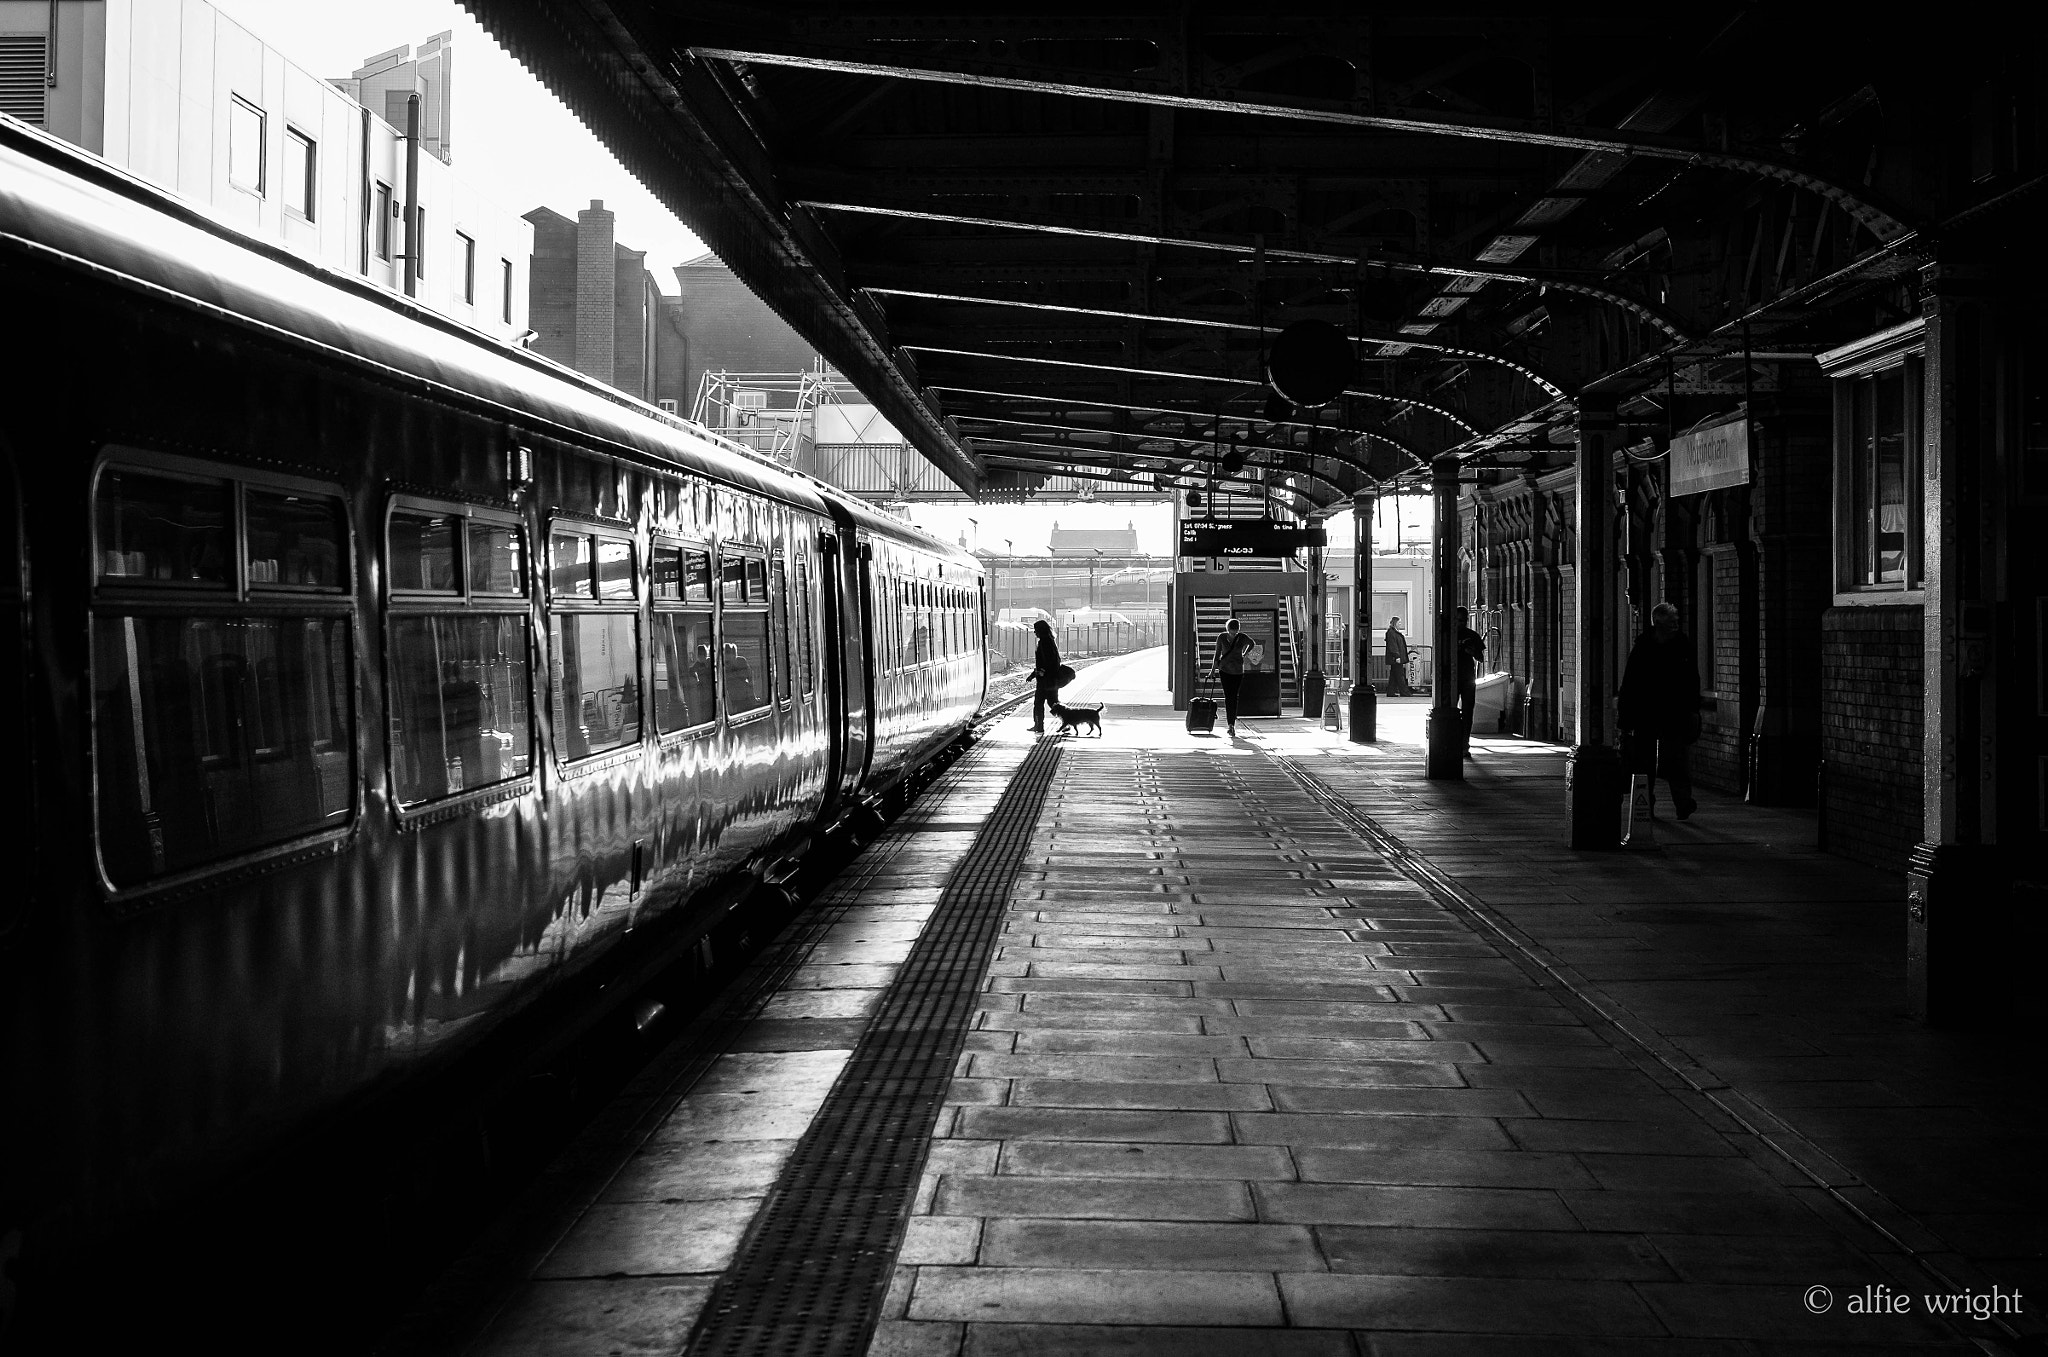 Photograph Platform 1... by alfie wright on 500px